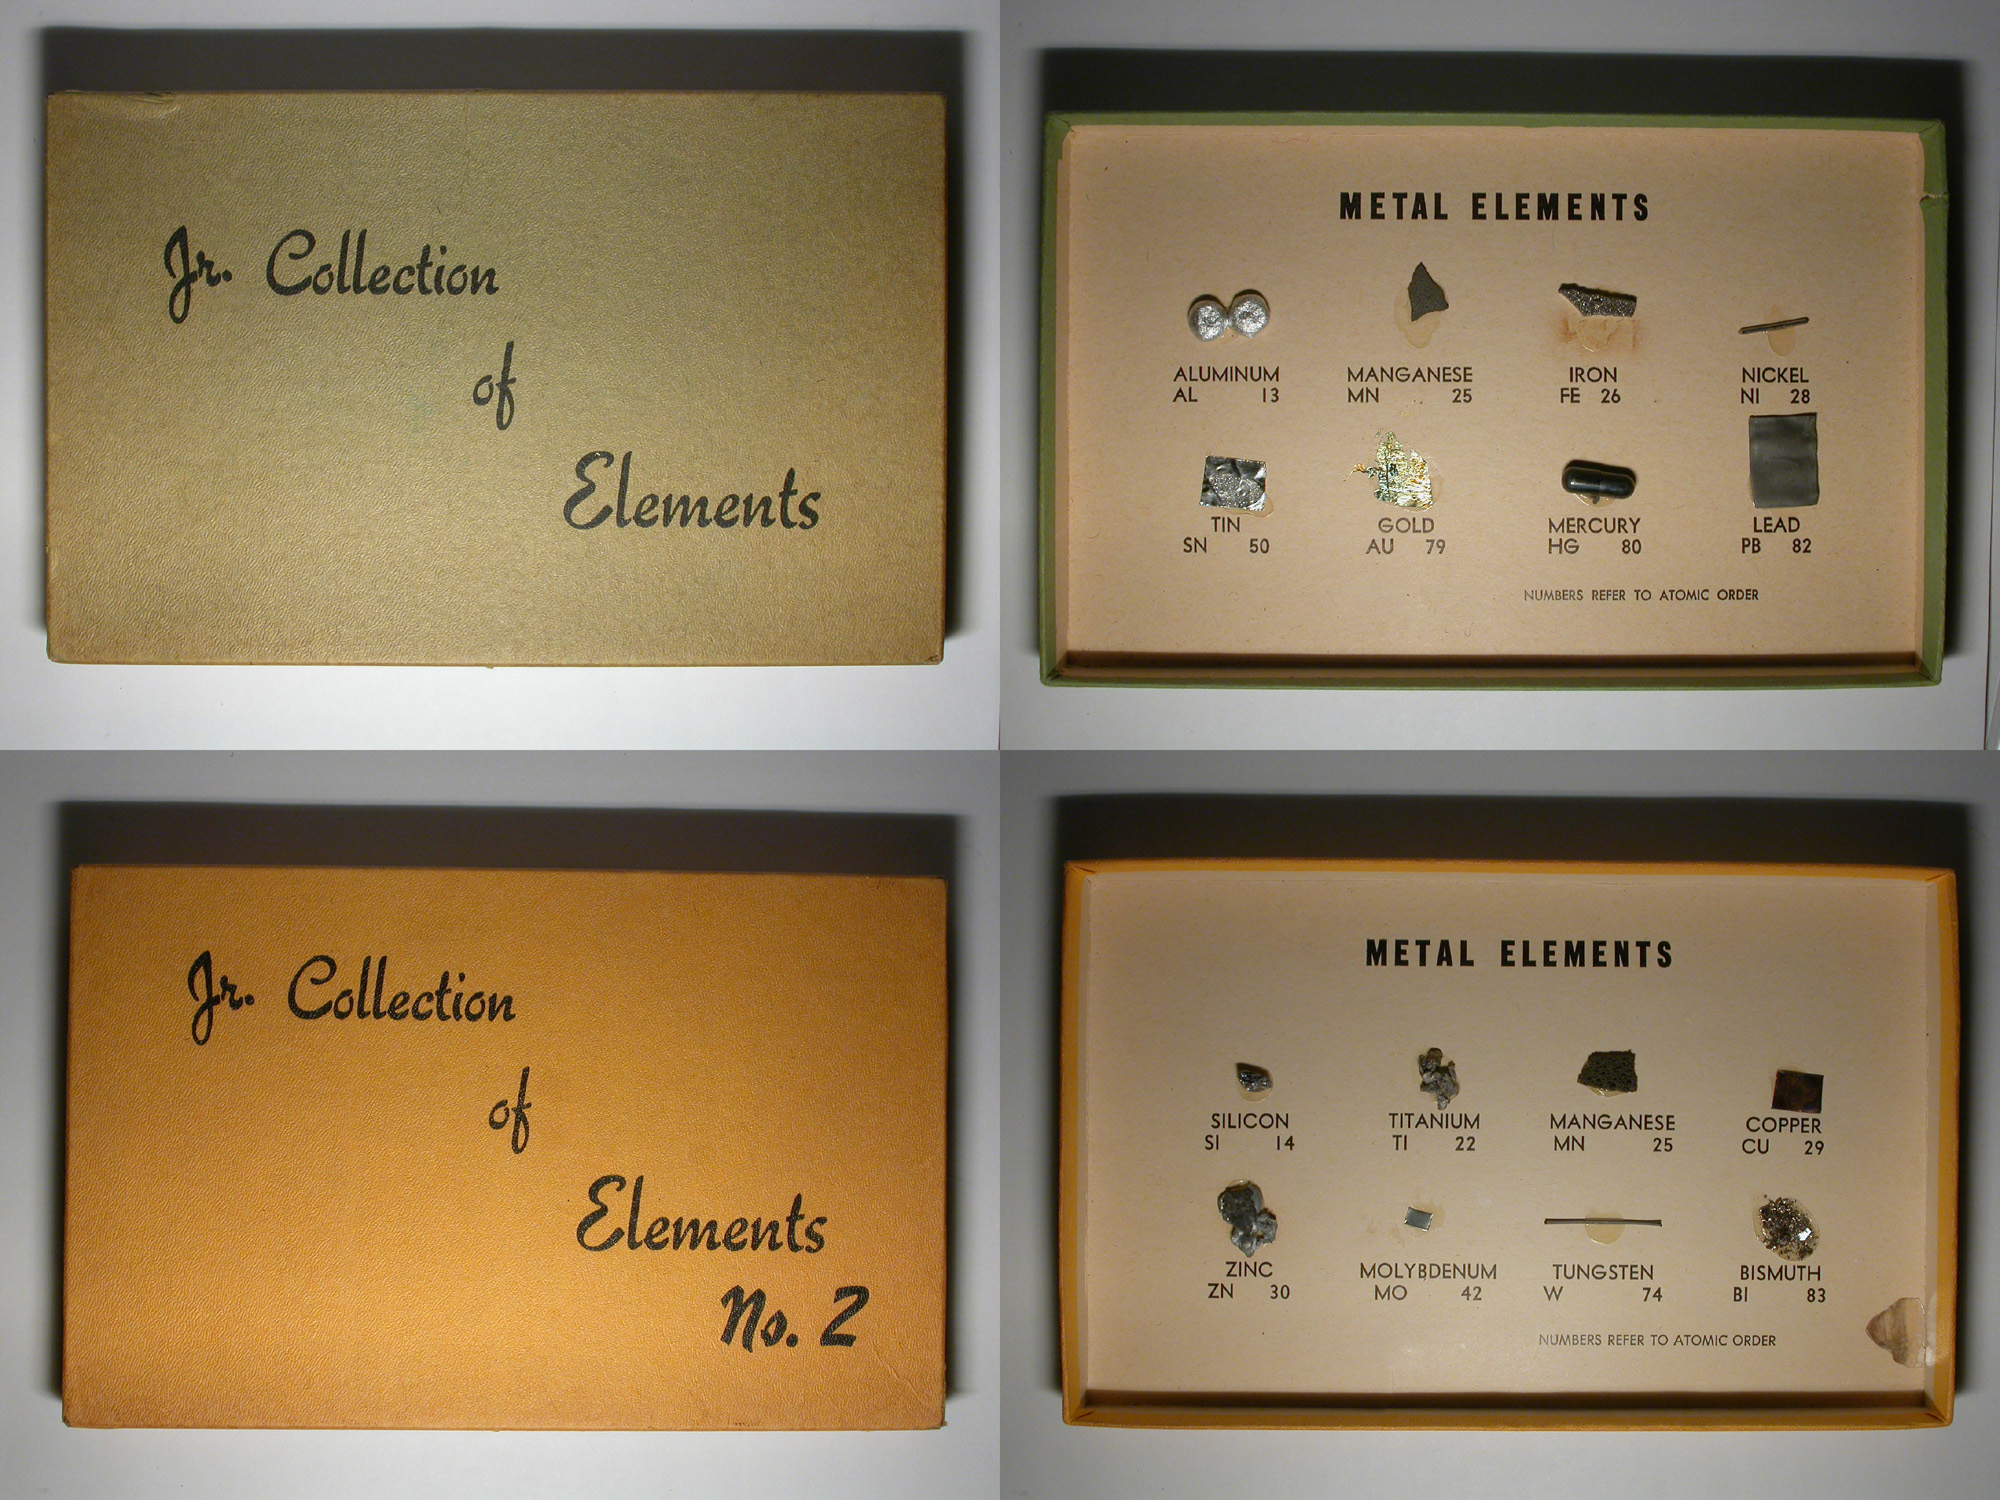 Pictures stories and facts about the element bismuth in the jr collection of elements urtaz